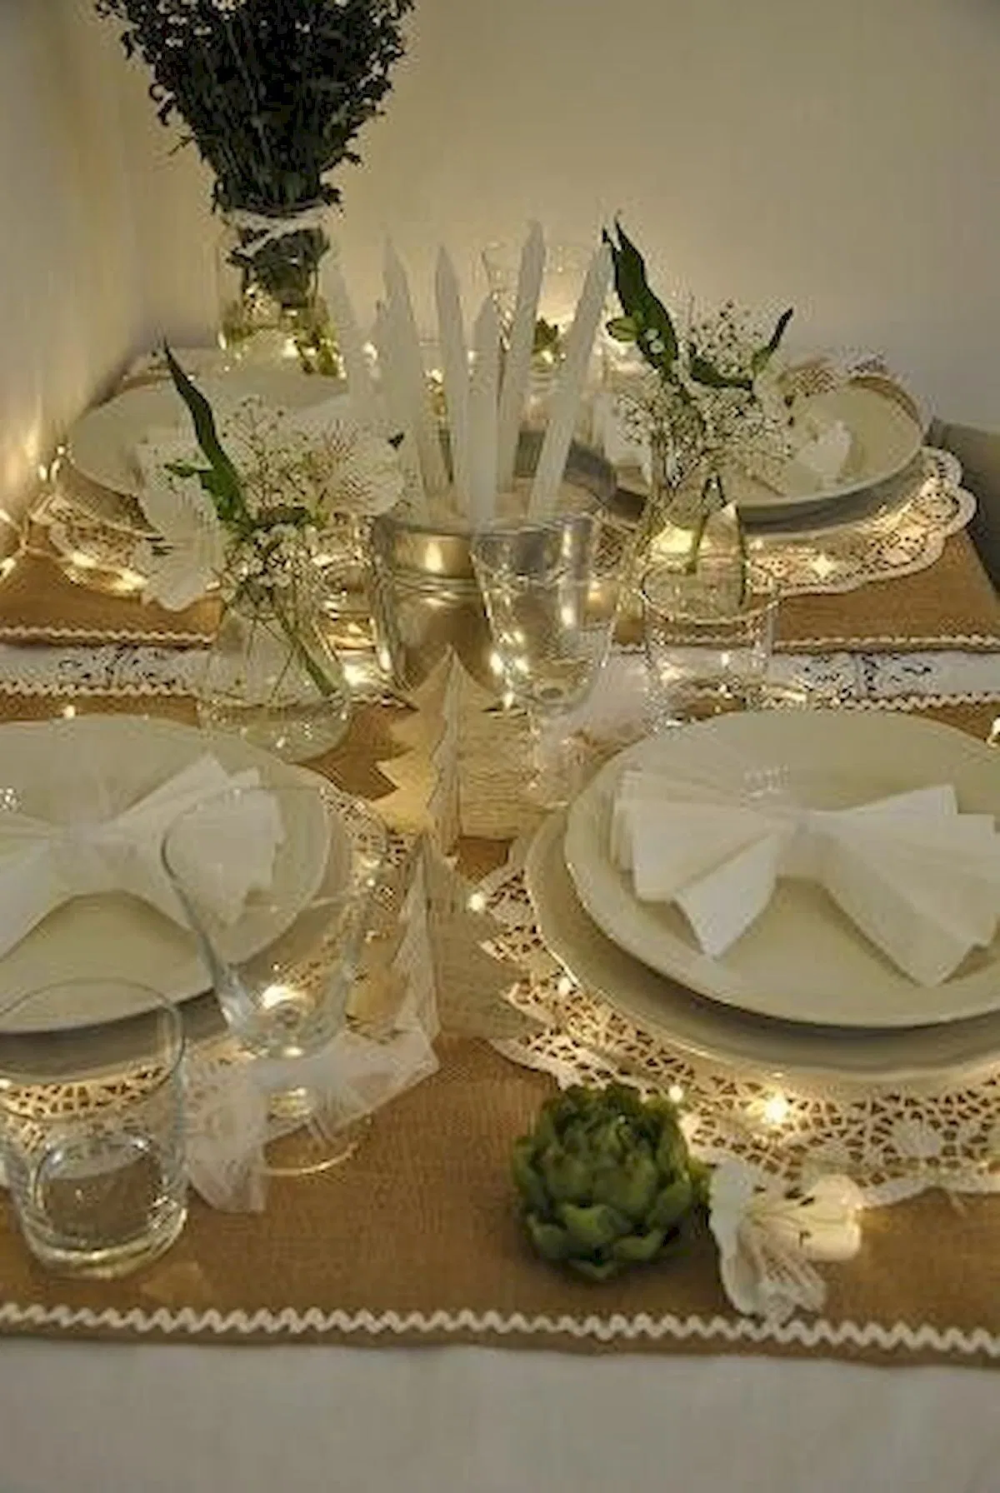 Christmas Tablescapes in 2020 Beautiful table settings